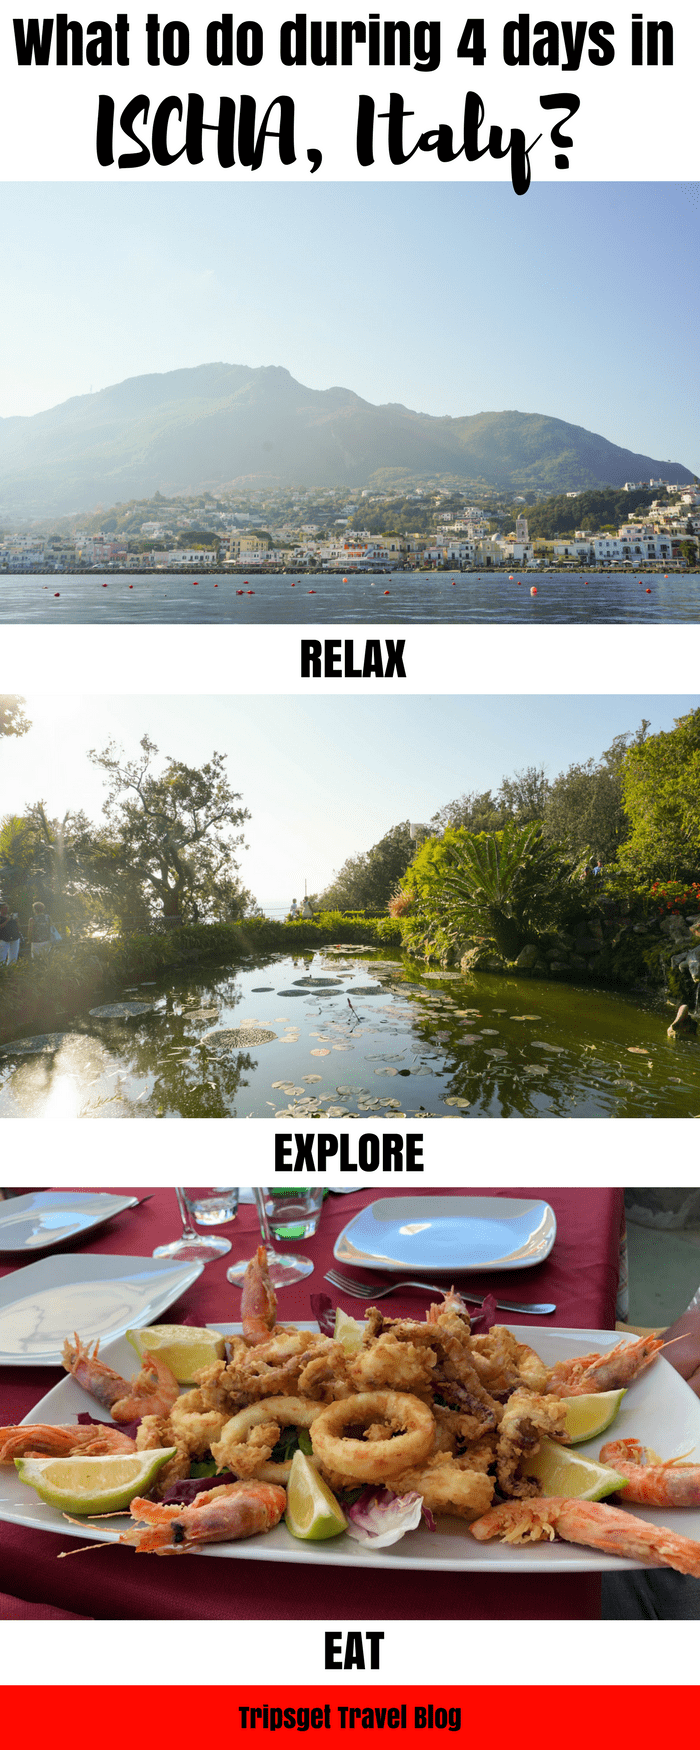 Things to do in Ischia, Italy